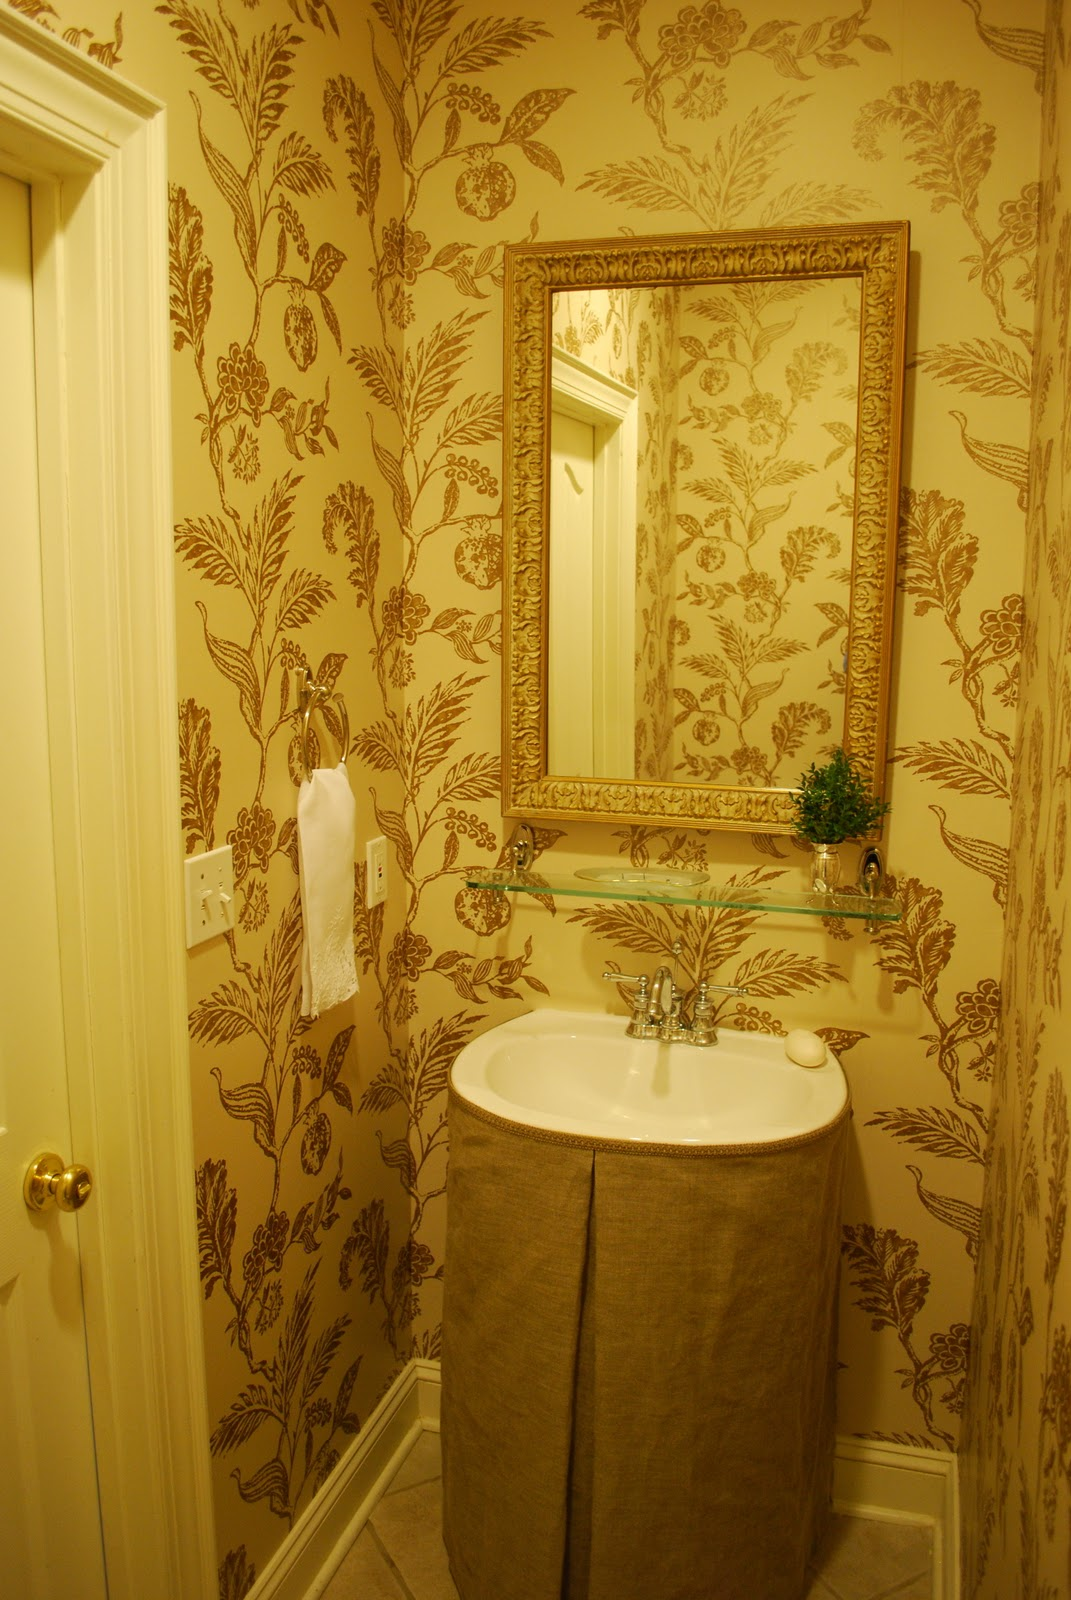 interior design musings: Double Take - Powder Room Makeover